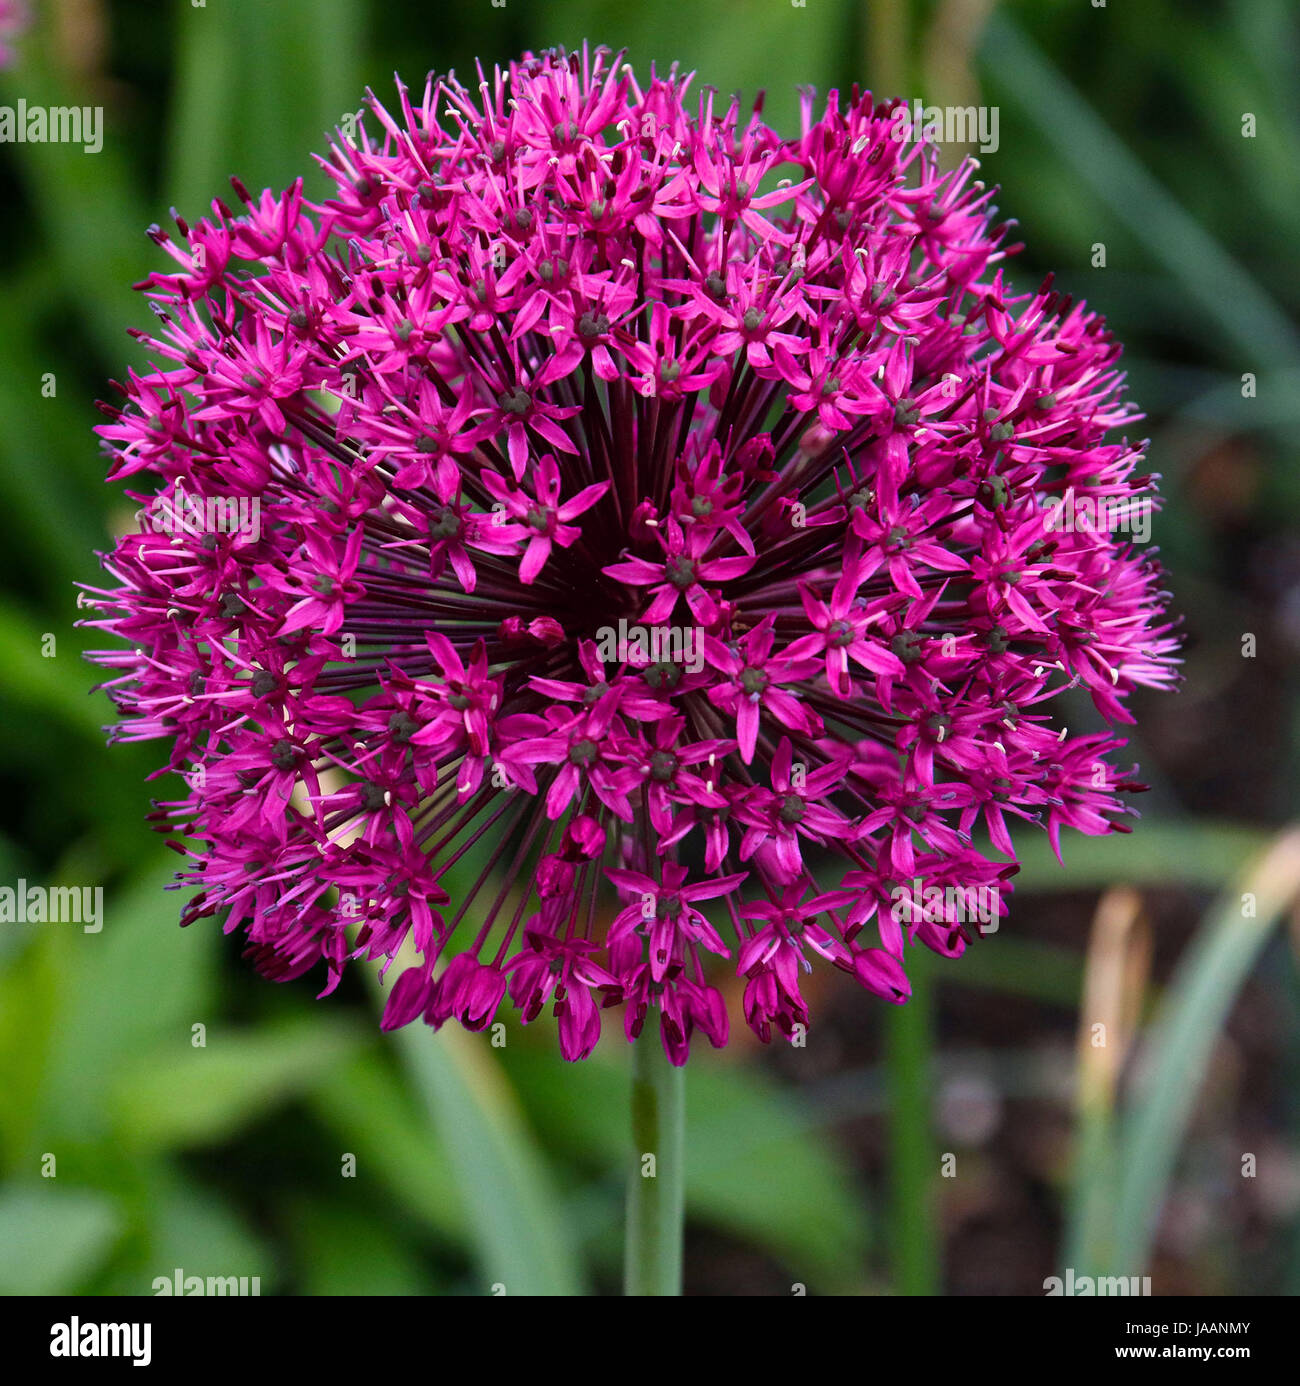 Purple cone flower with green leaves - Stock Image